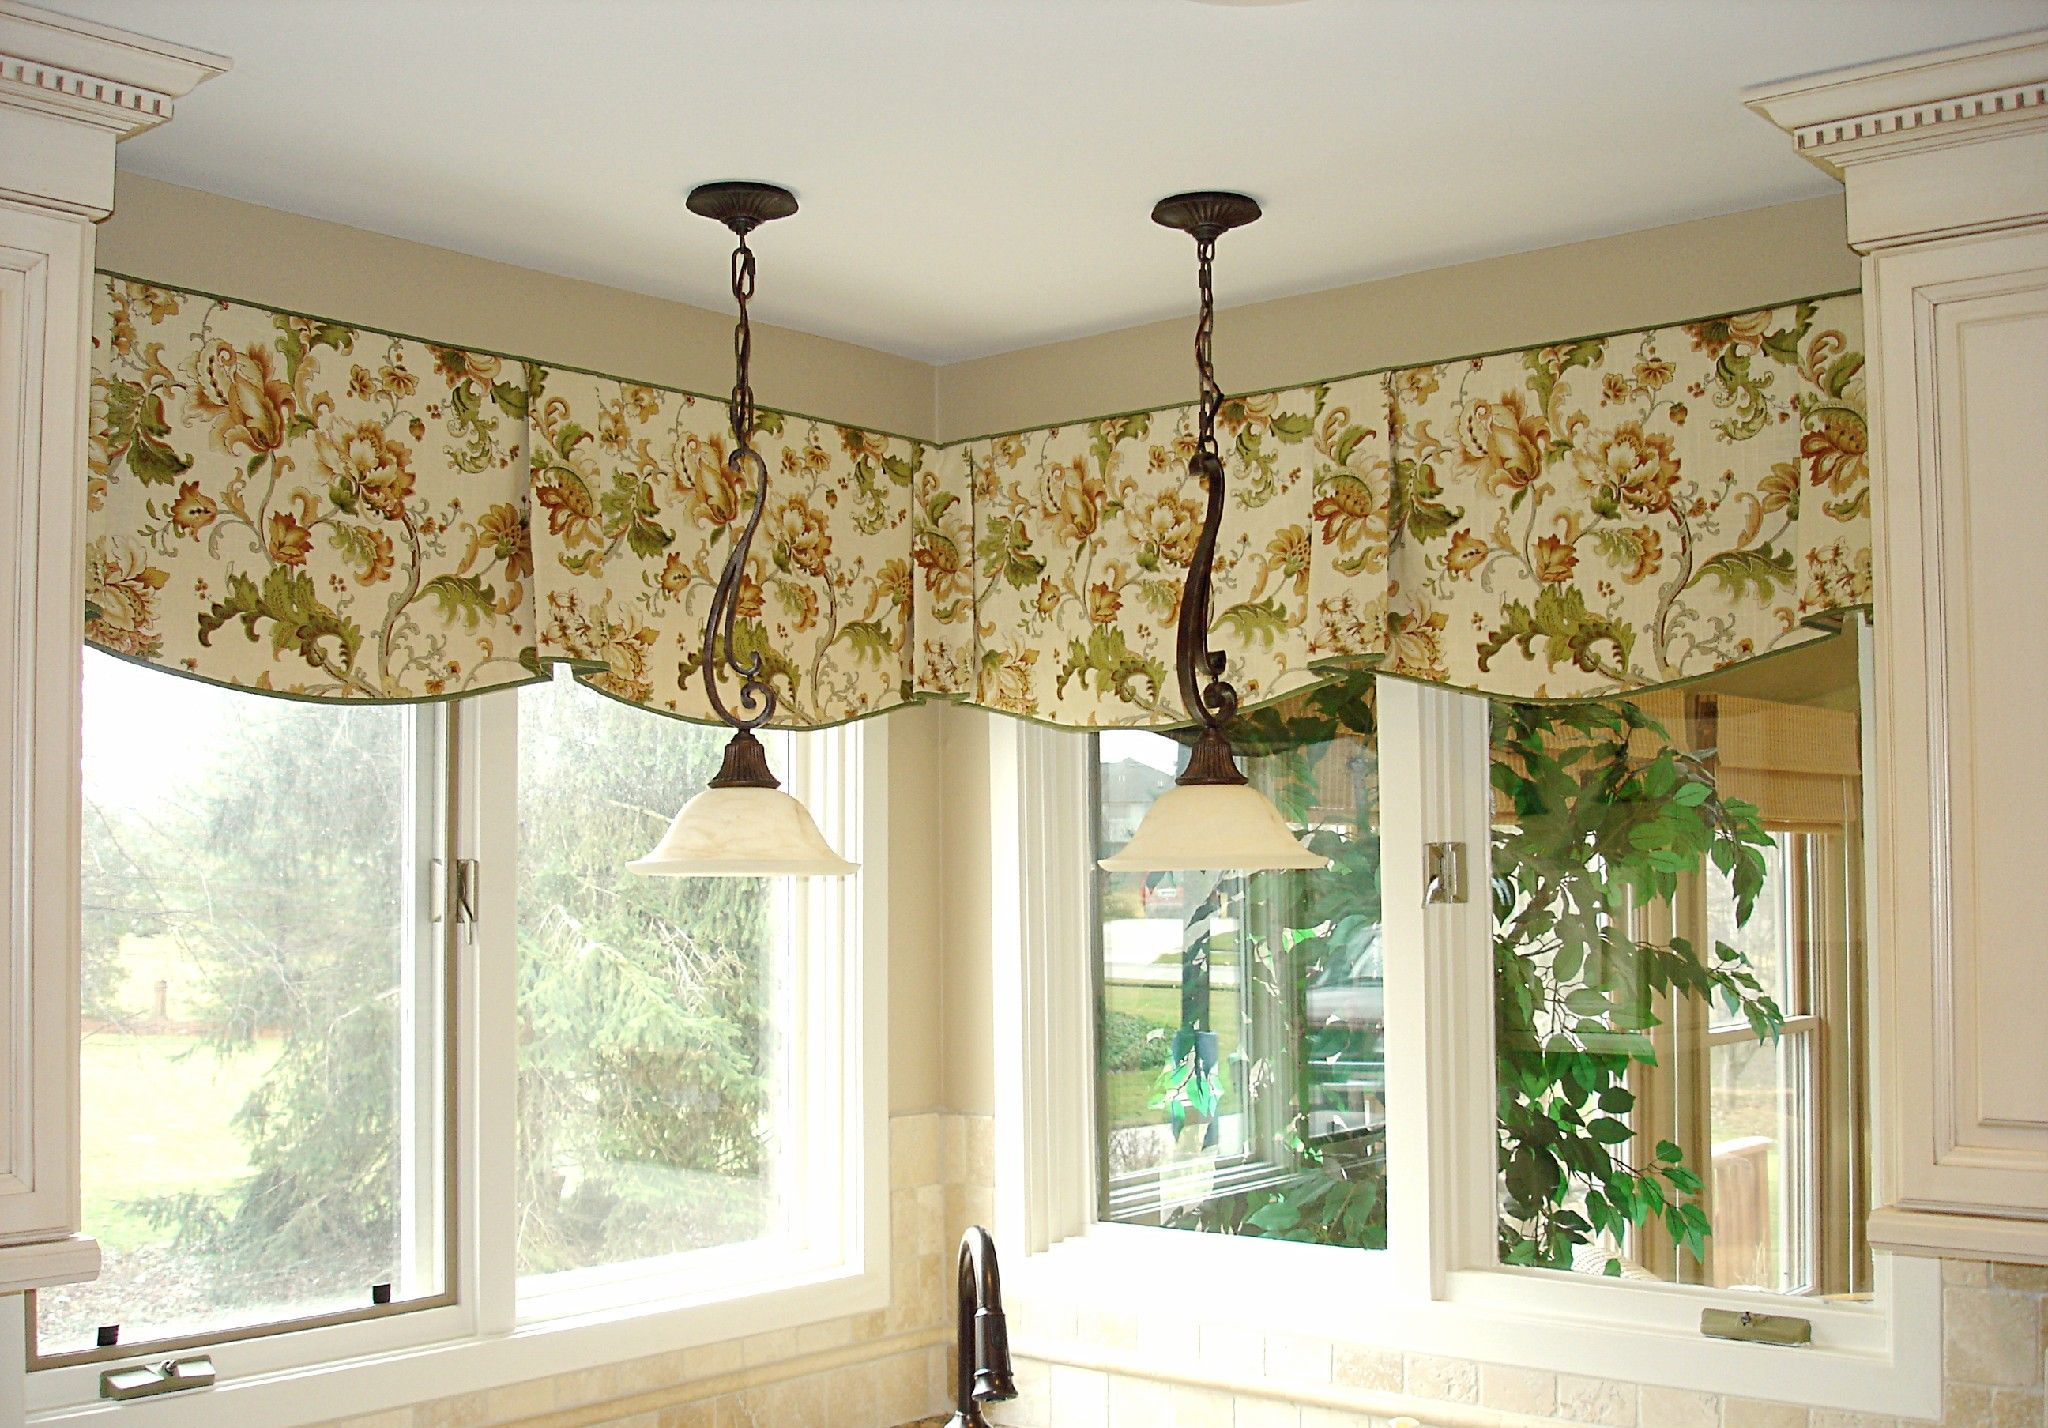 Valances For Kitchen Windows Trash Compactor Interior Vintage Green Floral Patterned Window Valance Combined Classical Pendant Lamps Living Room